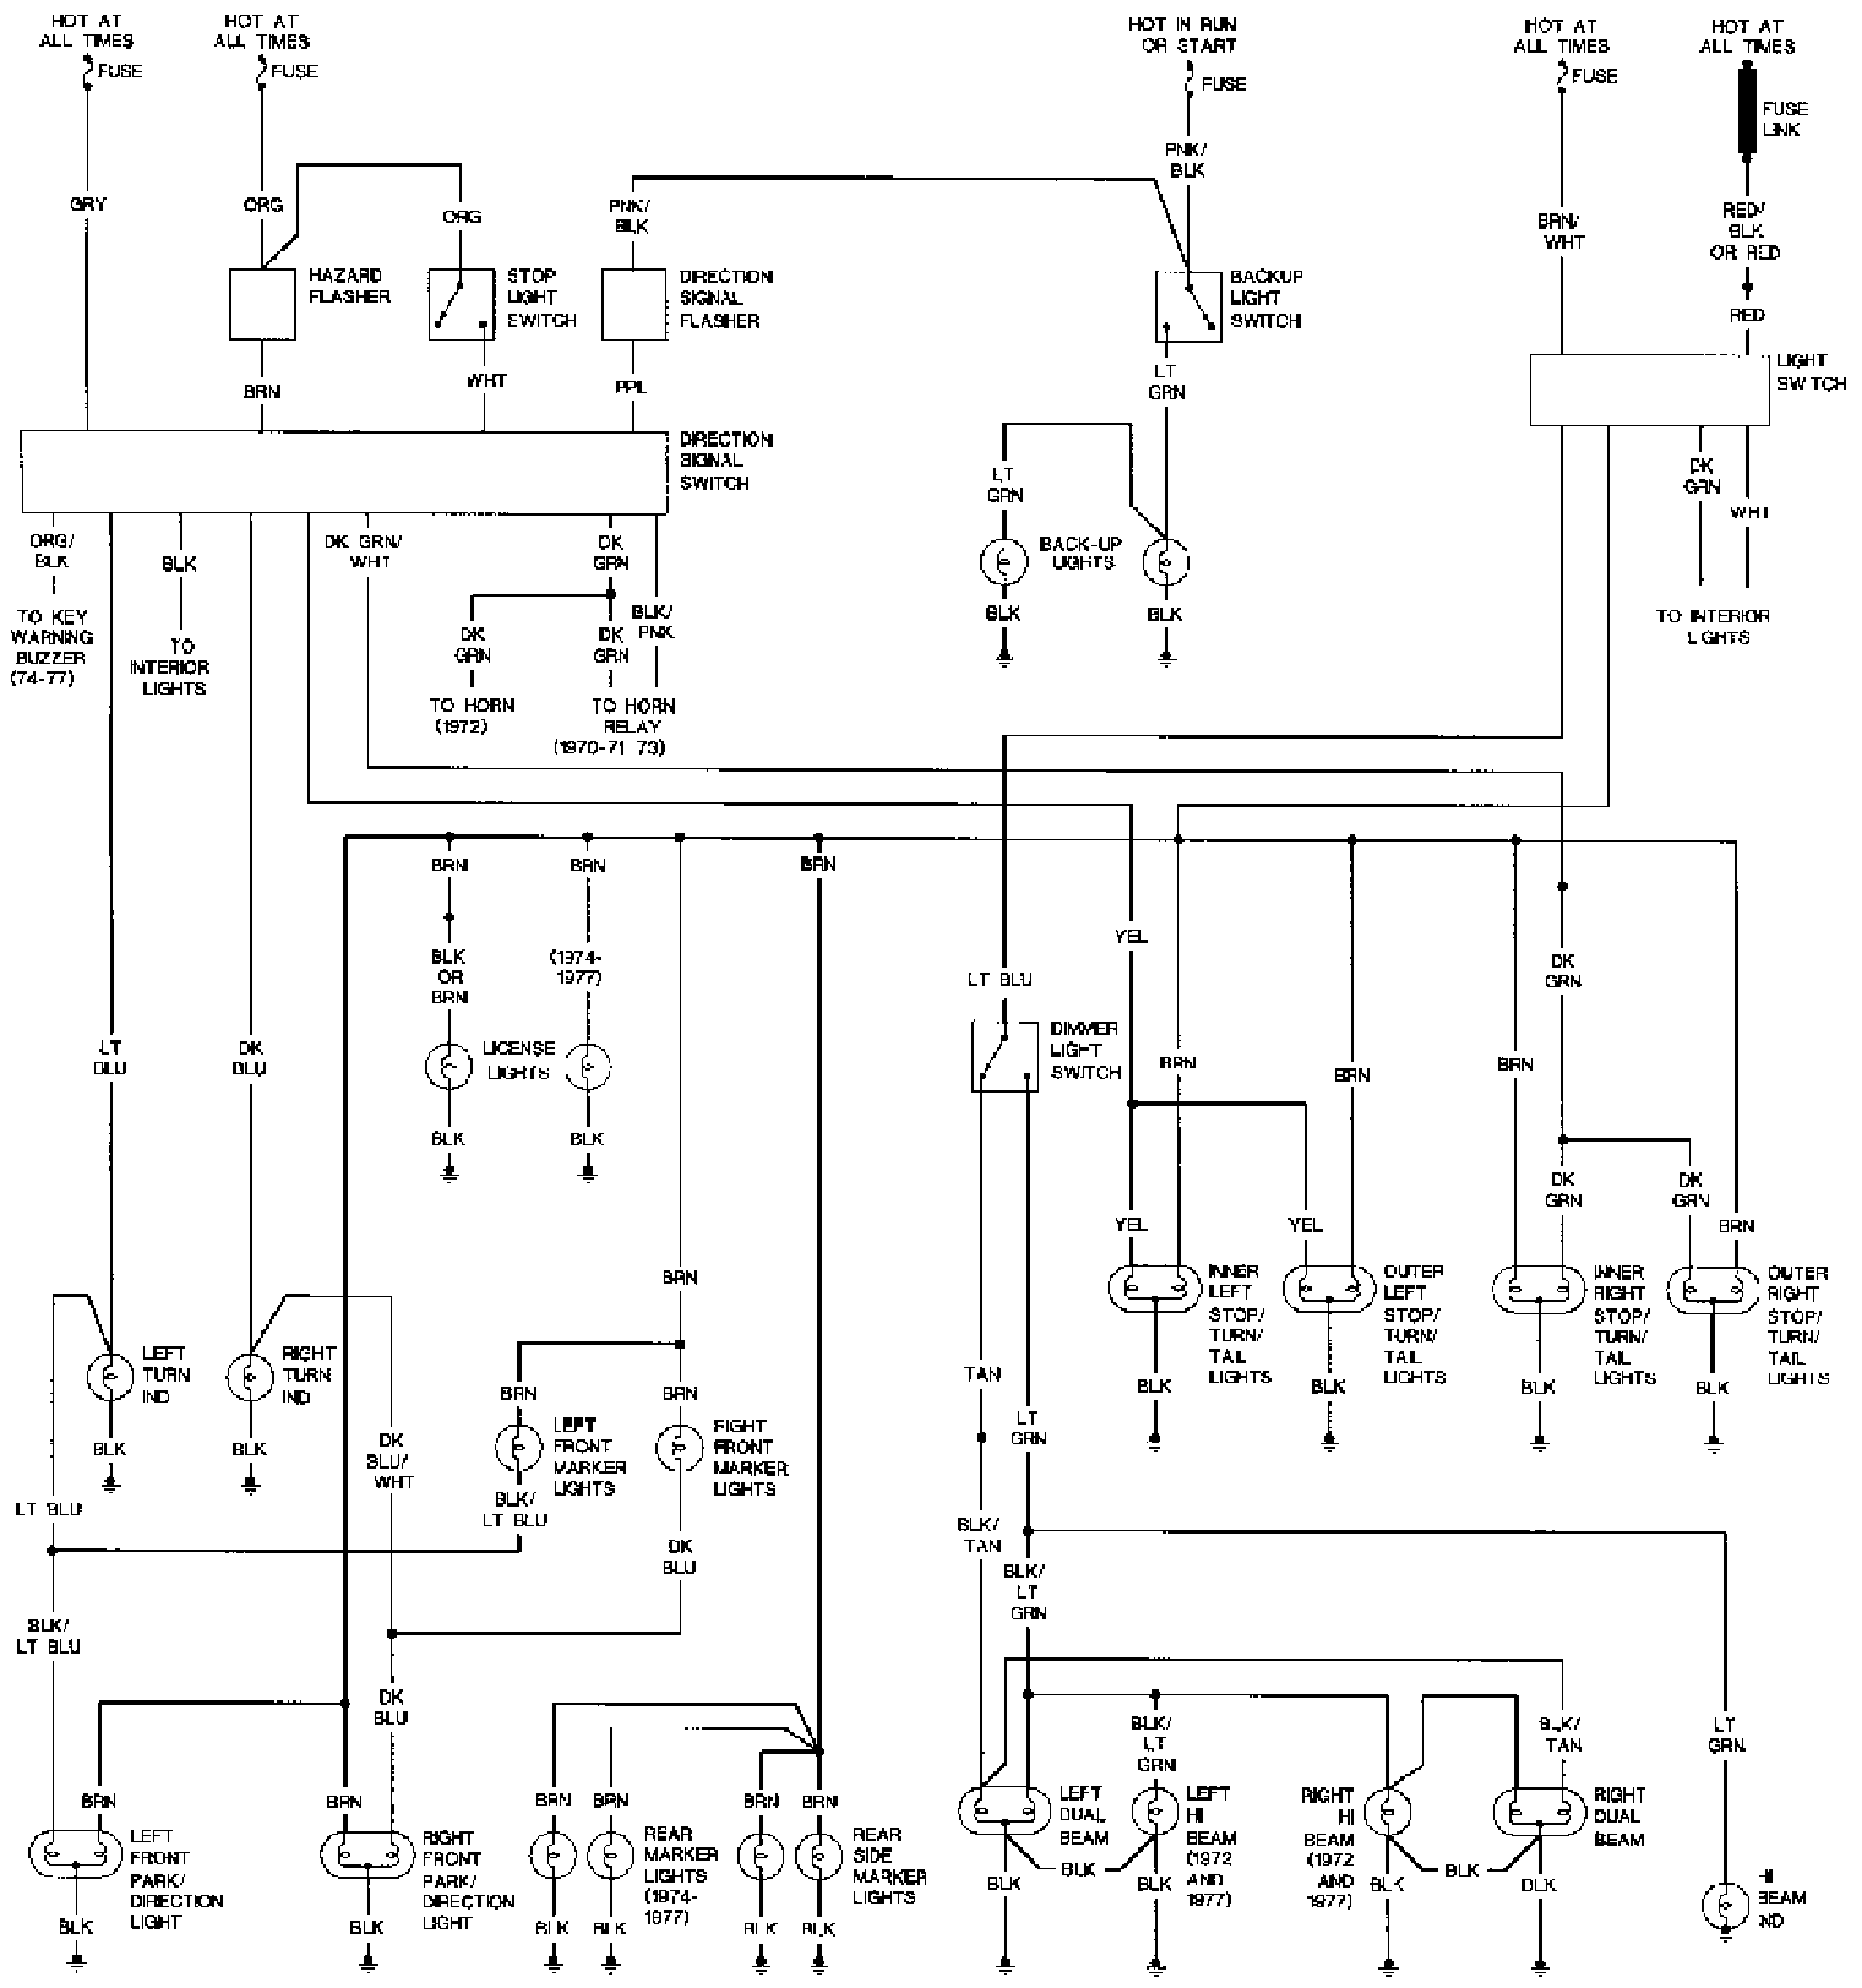 Diagram In Pictures Database 1994 Firebird Wiring Diagram Just Download Or Read Wiring Diagram Ernest Gugenheim Putco Tailgate Wiring Onyxum Com